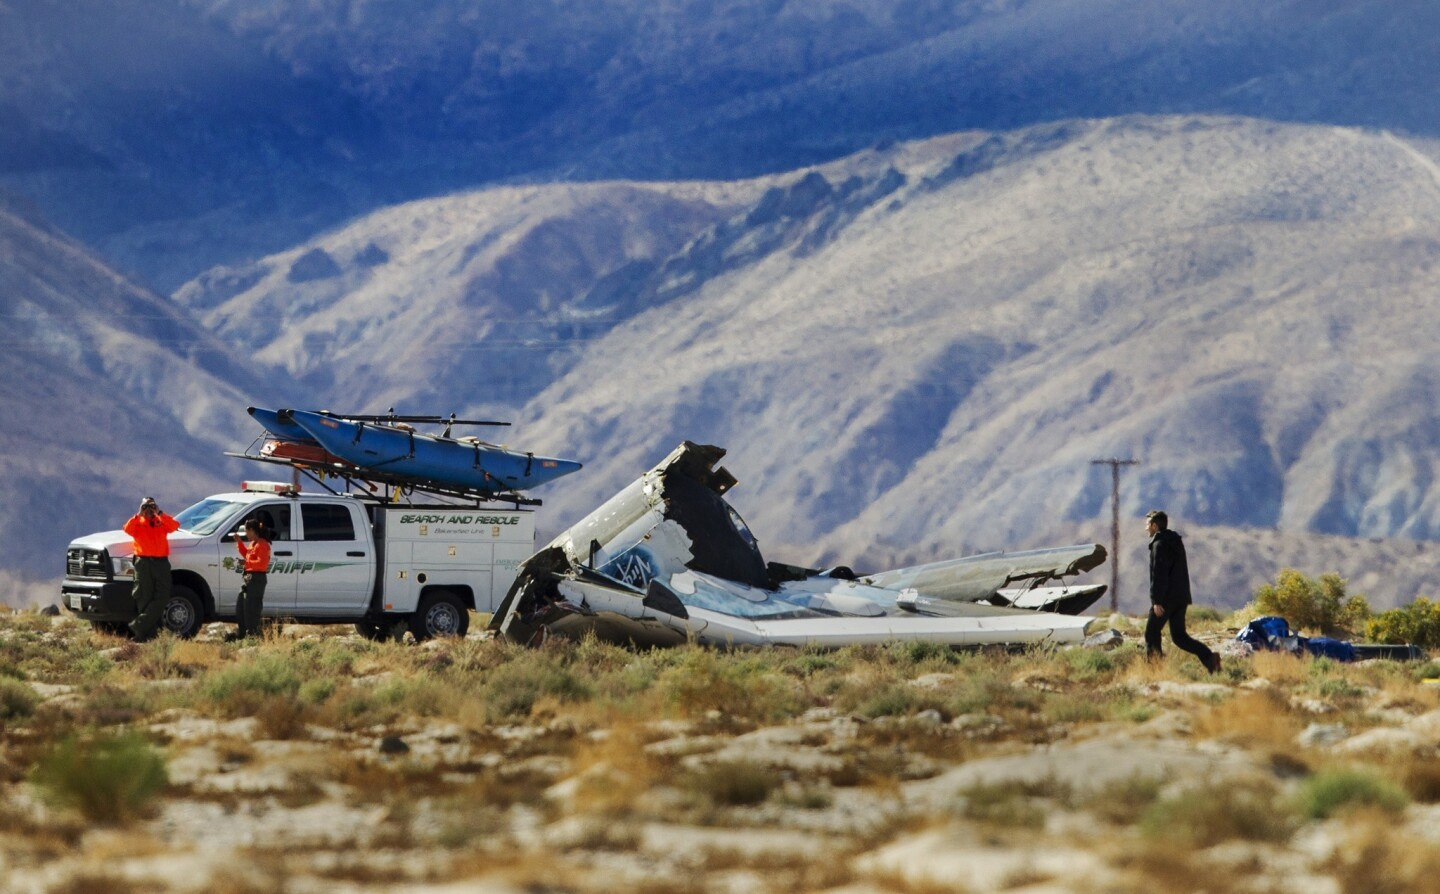 Kern County Sheriff officers keep watch as an investigator looks over the wreckage site of the Virgin Galactic SpaceShipTwo in Mojave.